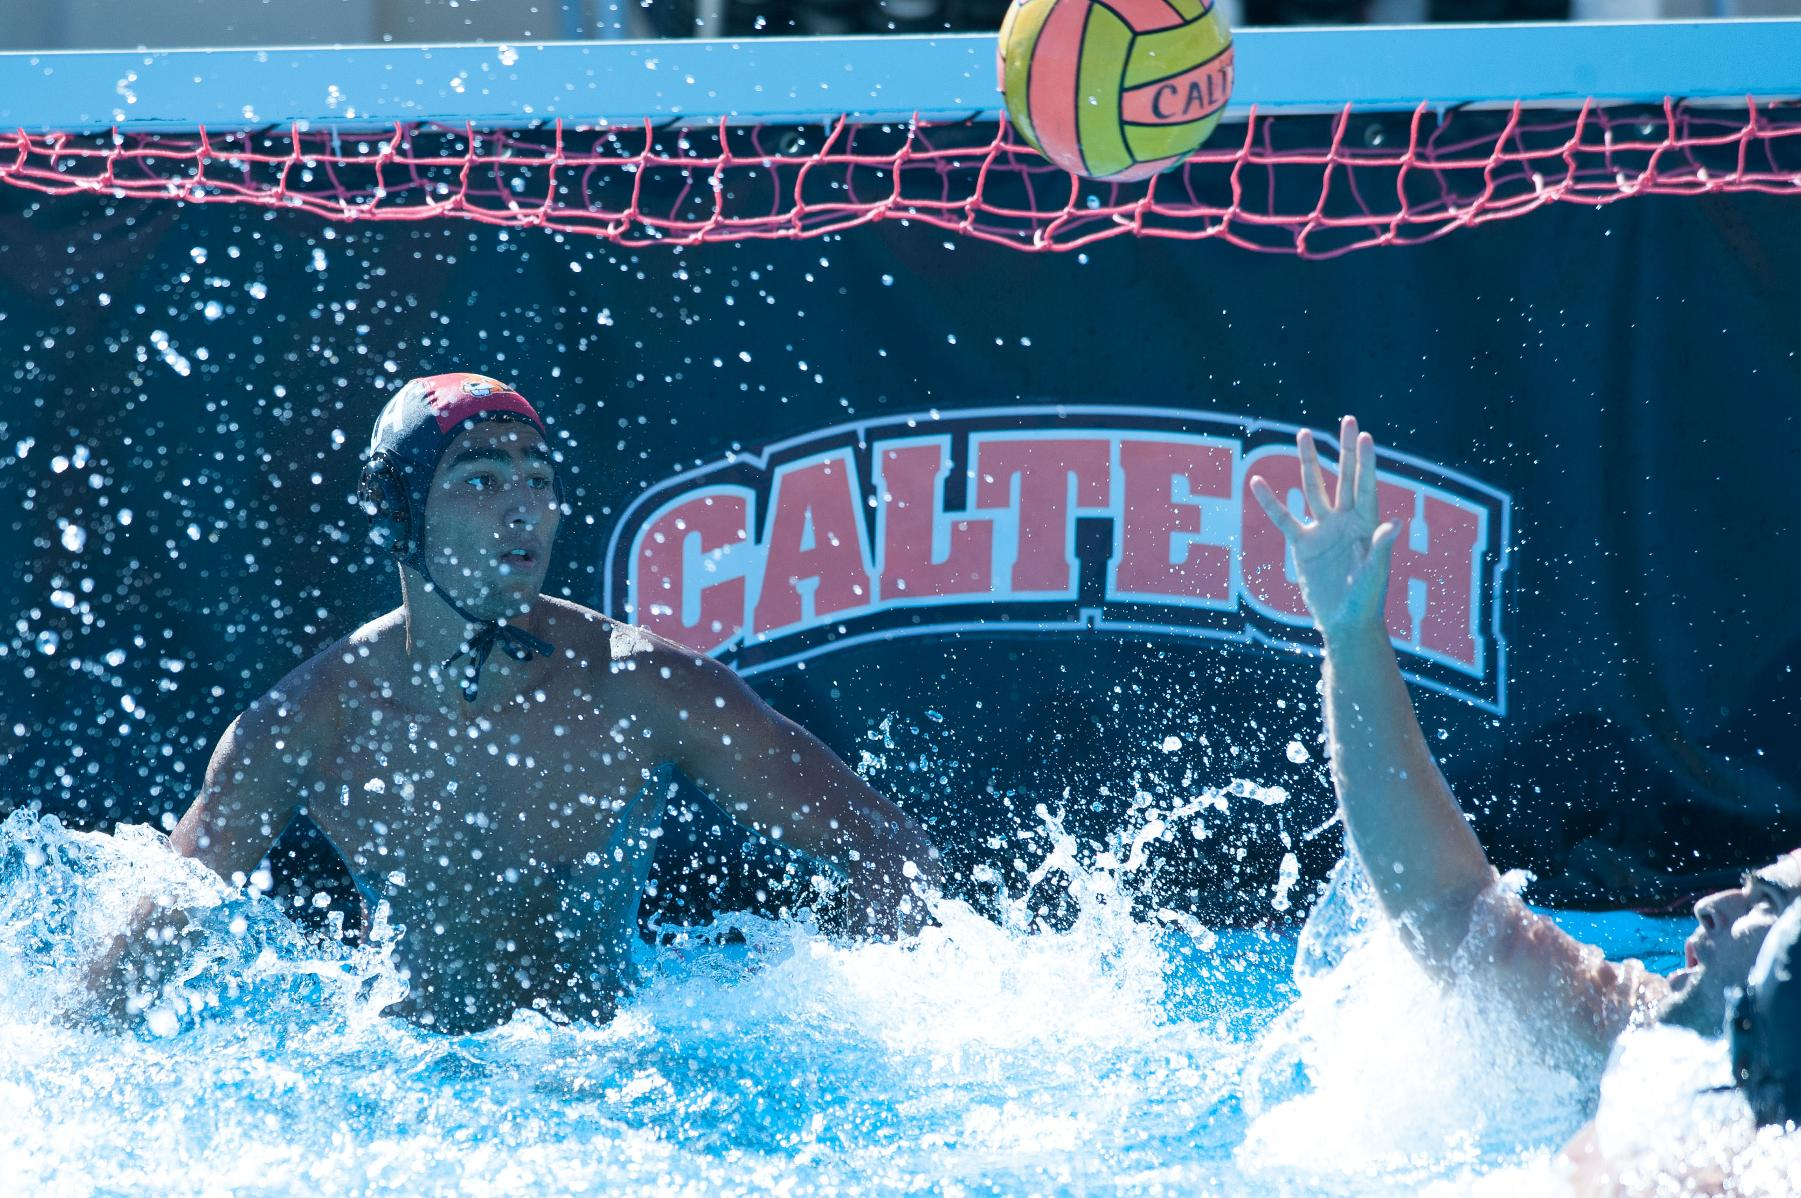 Gilani Totals 38 Saves Over Two SCIAC Tournament Games